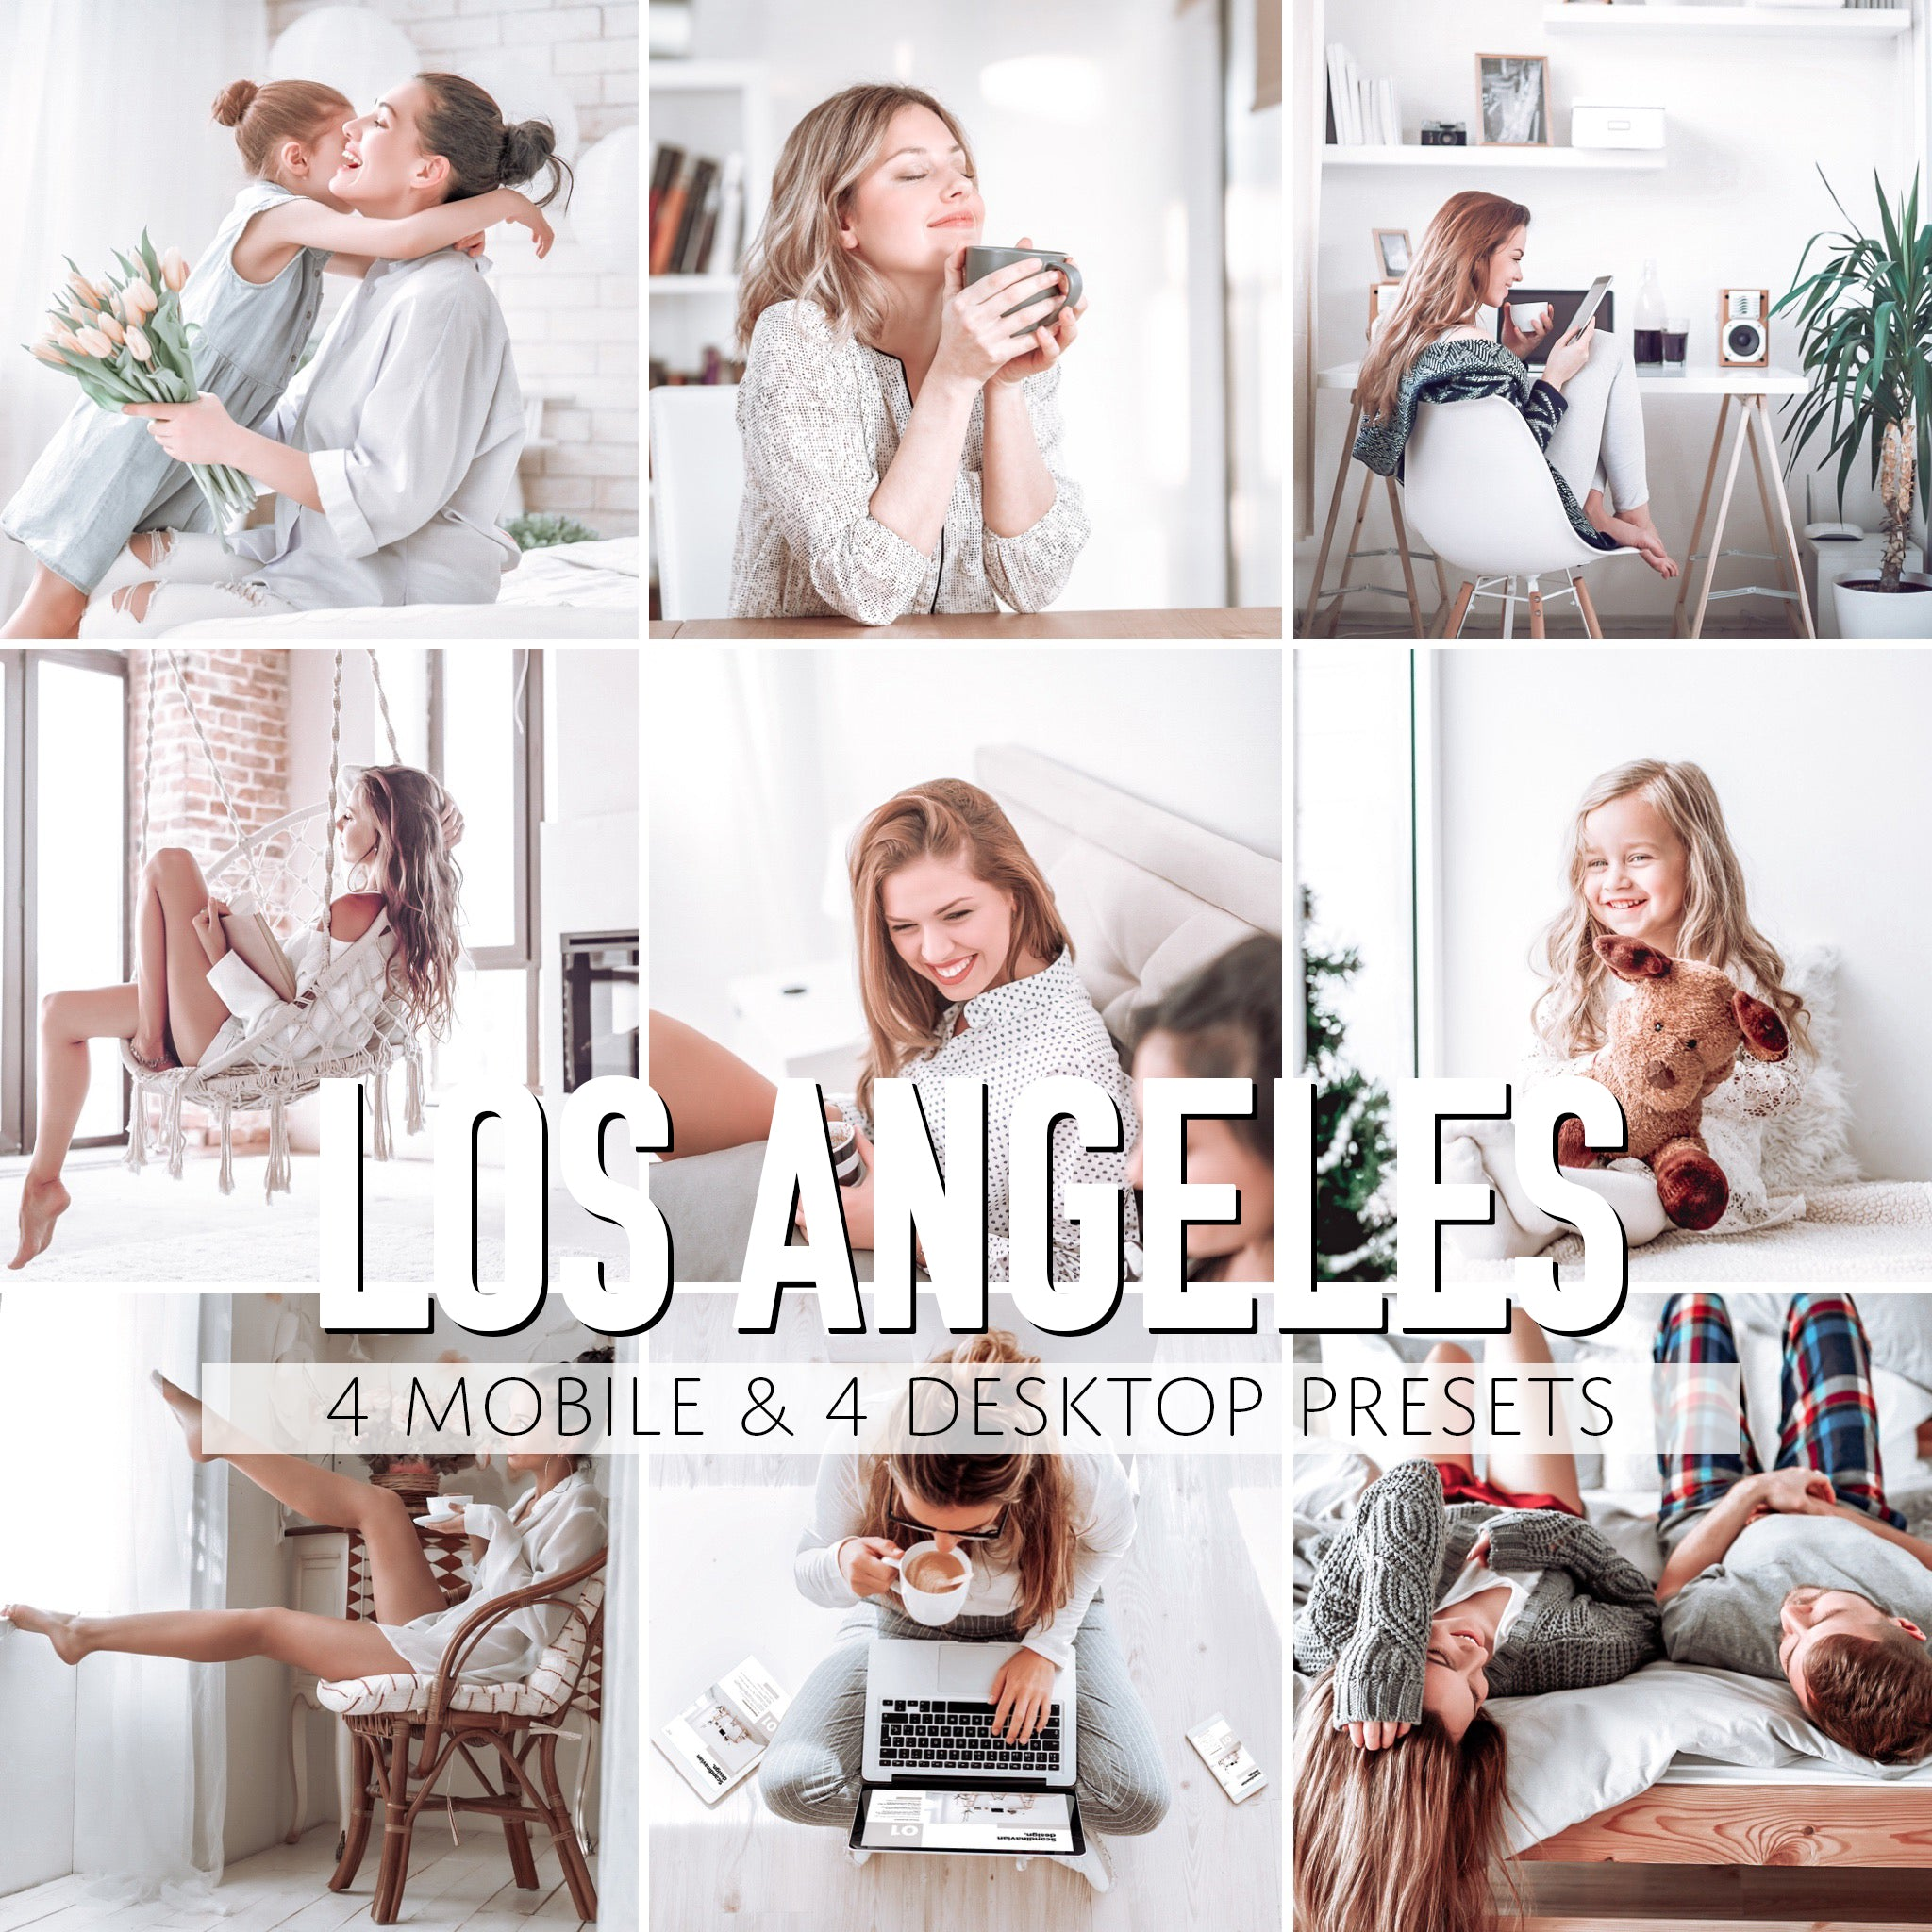 Los Angeles Mobile & Desktop Presets